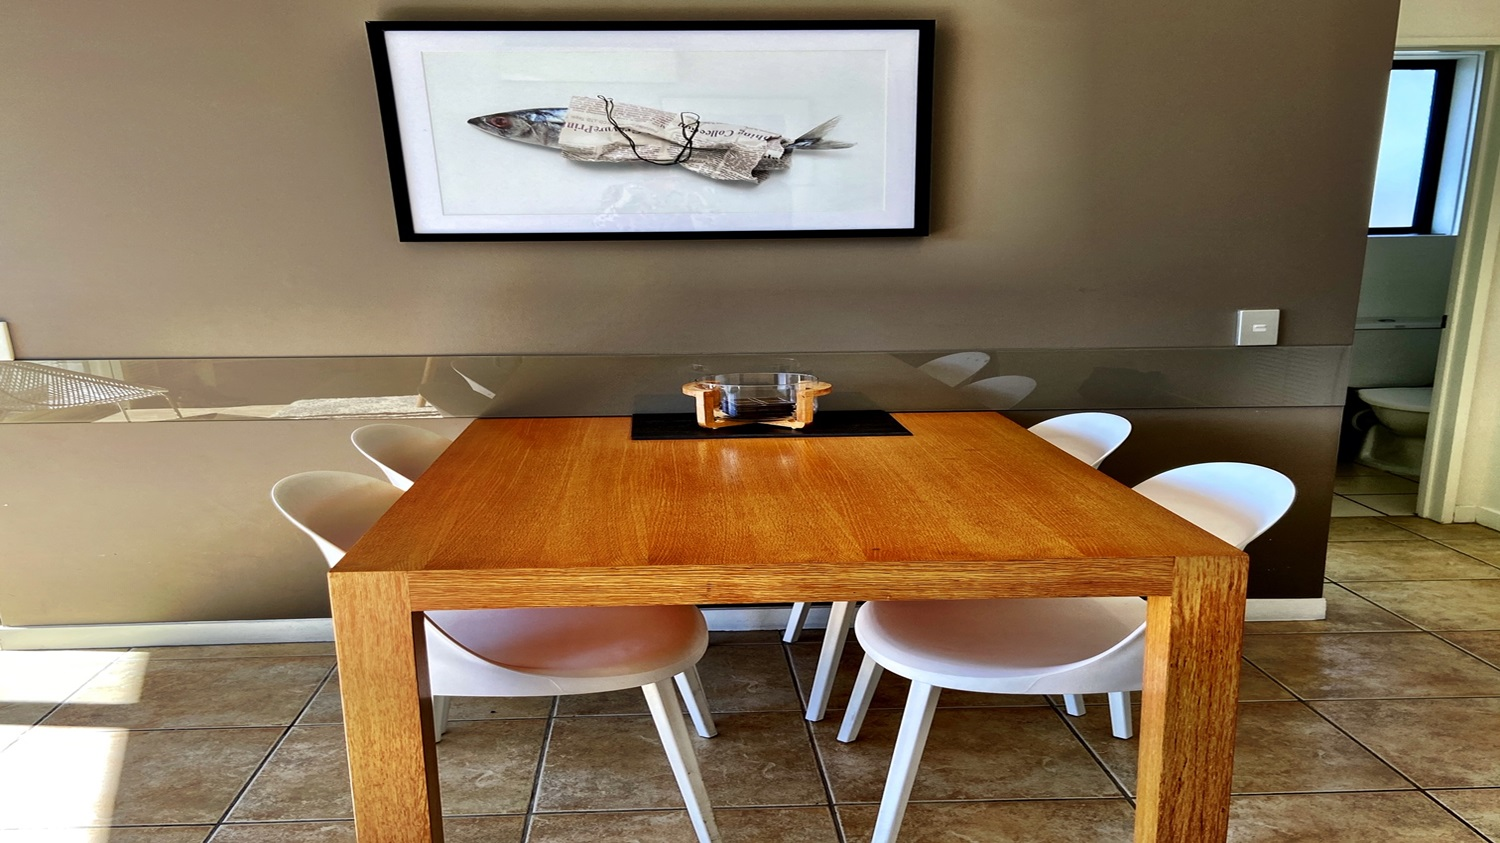 Bayview-Villa-dining-table-and-chairs.jpg